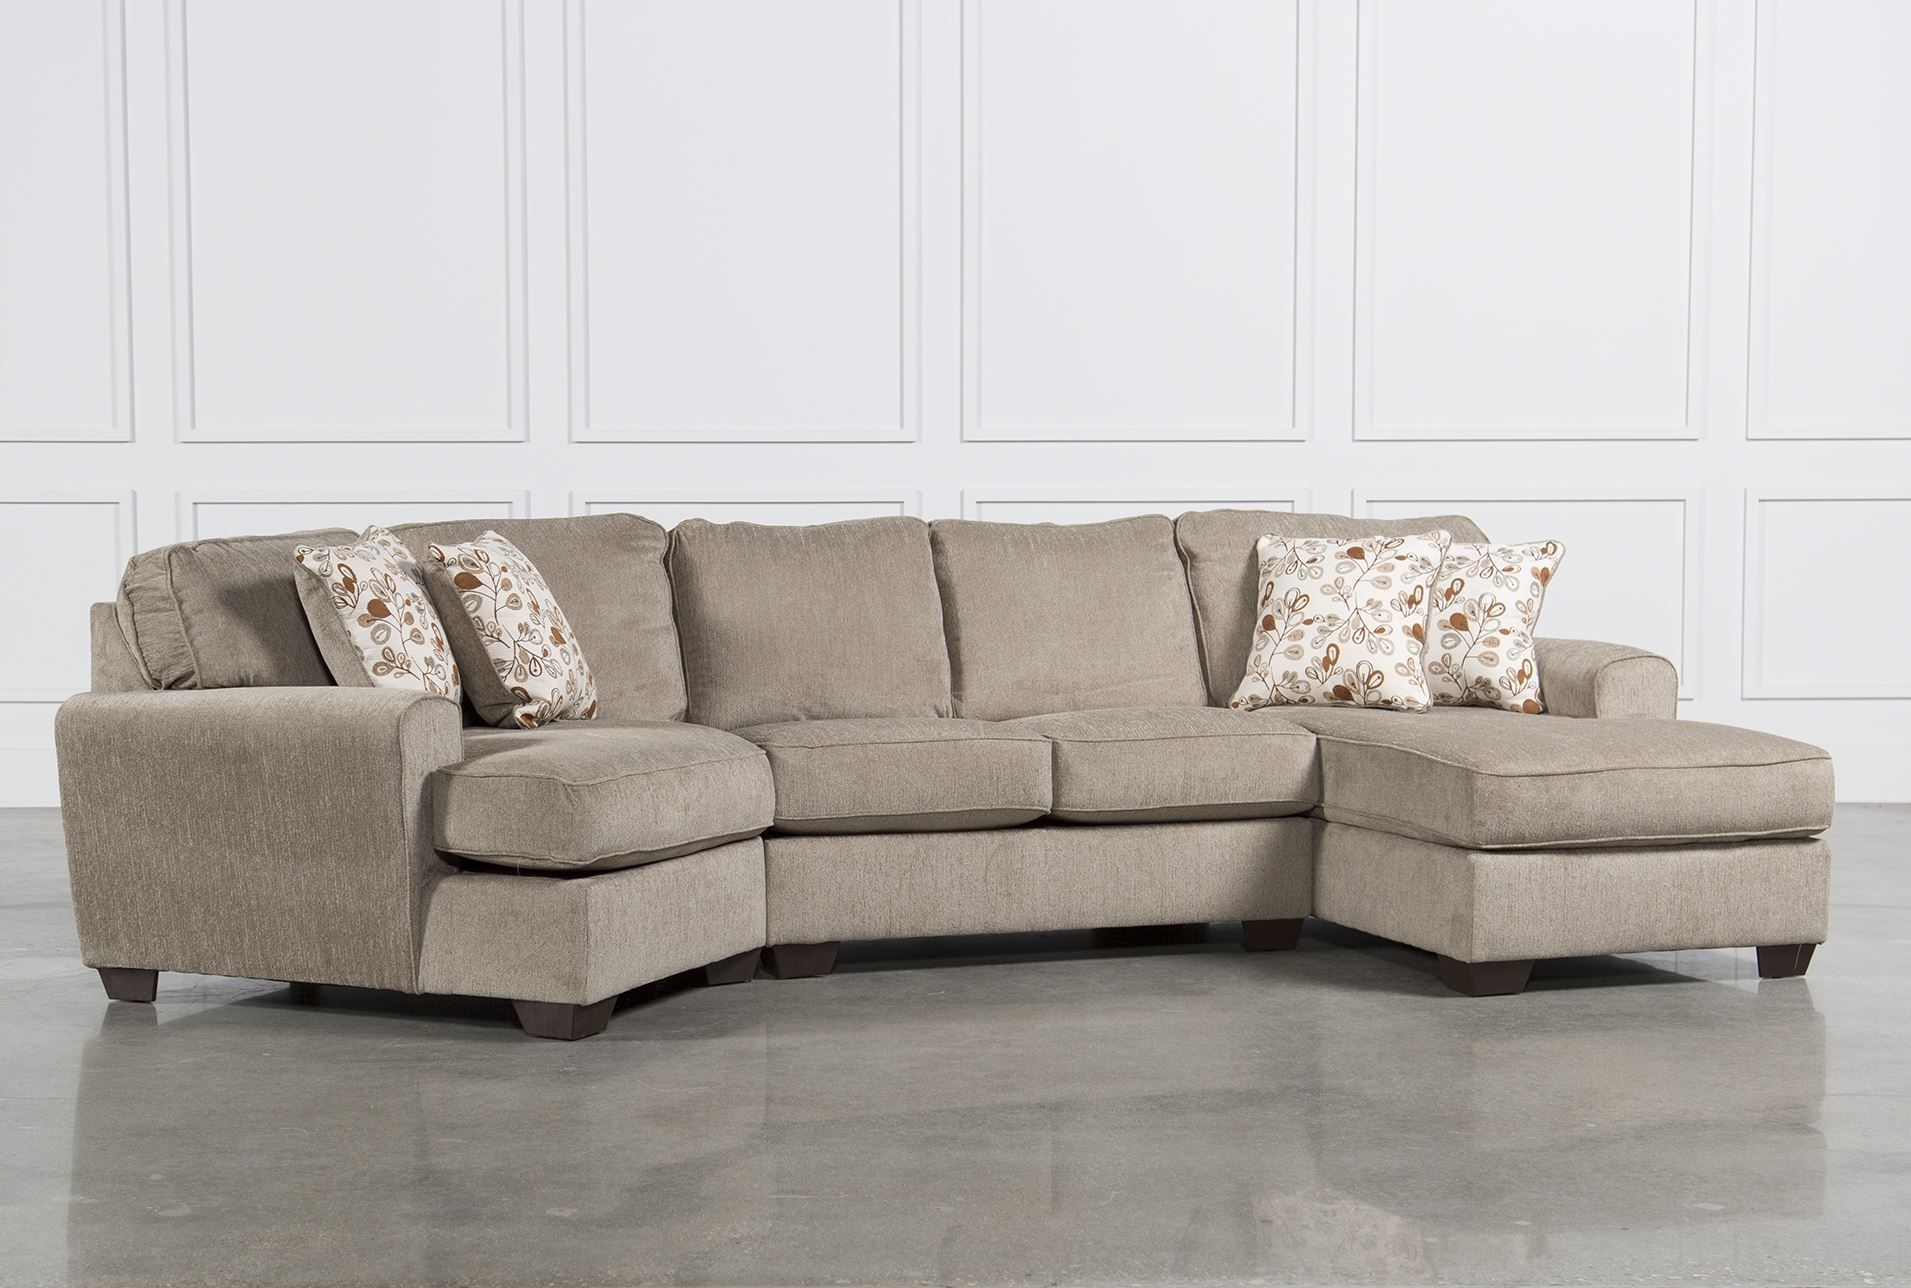 Patola Park 3 Piece Cuddler Sectional W/raf Corner Chaise | Mon regarding Cuddler Sectional Sofas (Image 10 of 10)